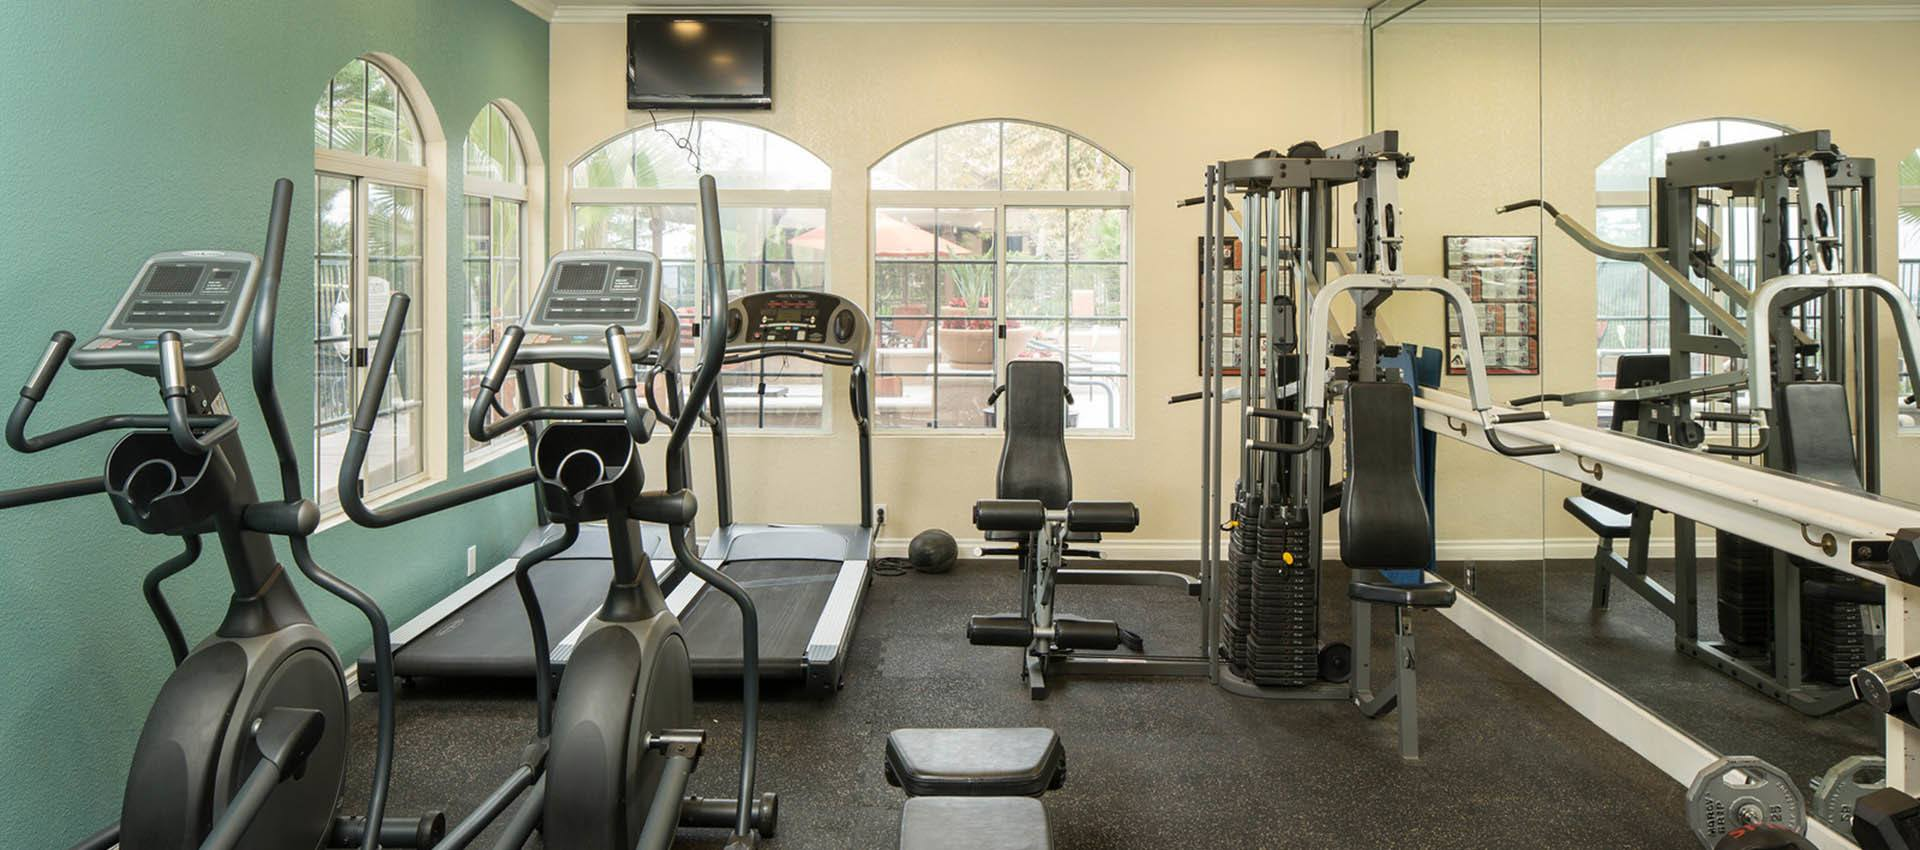 Well Equipped Fitness Center at Paloma Summit Condominium Rentals in Foothill Ranch, CA